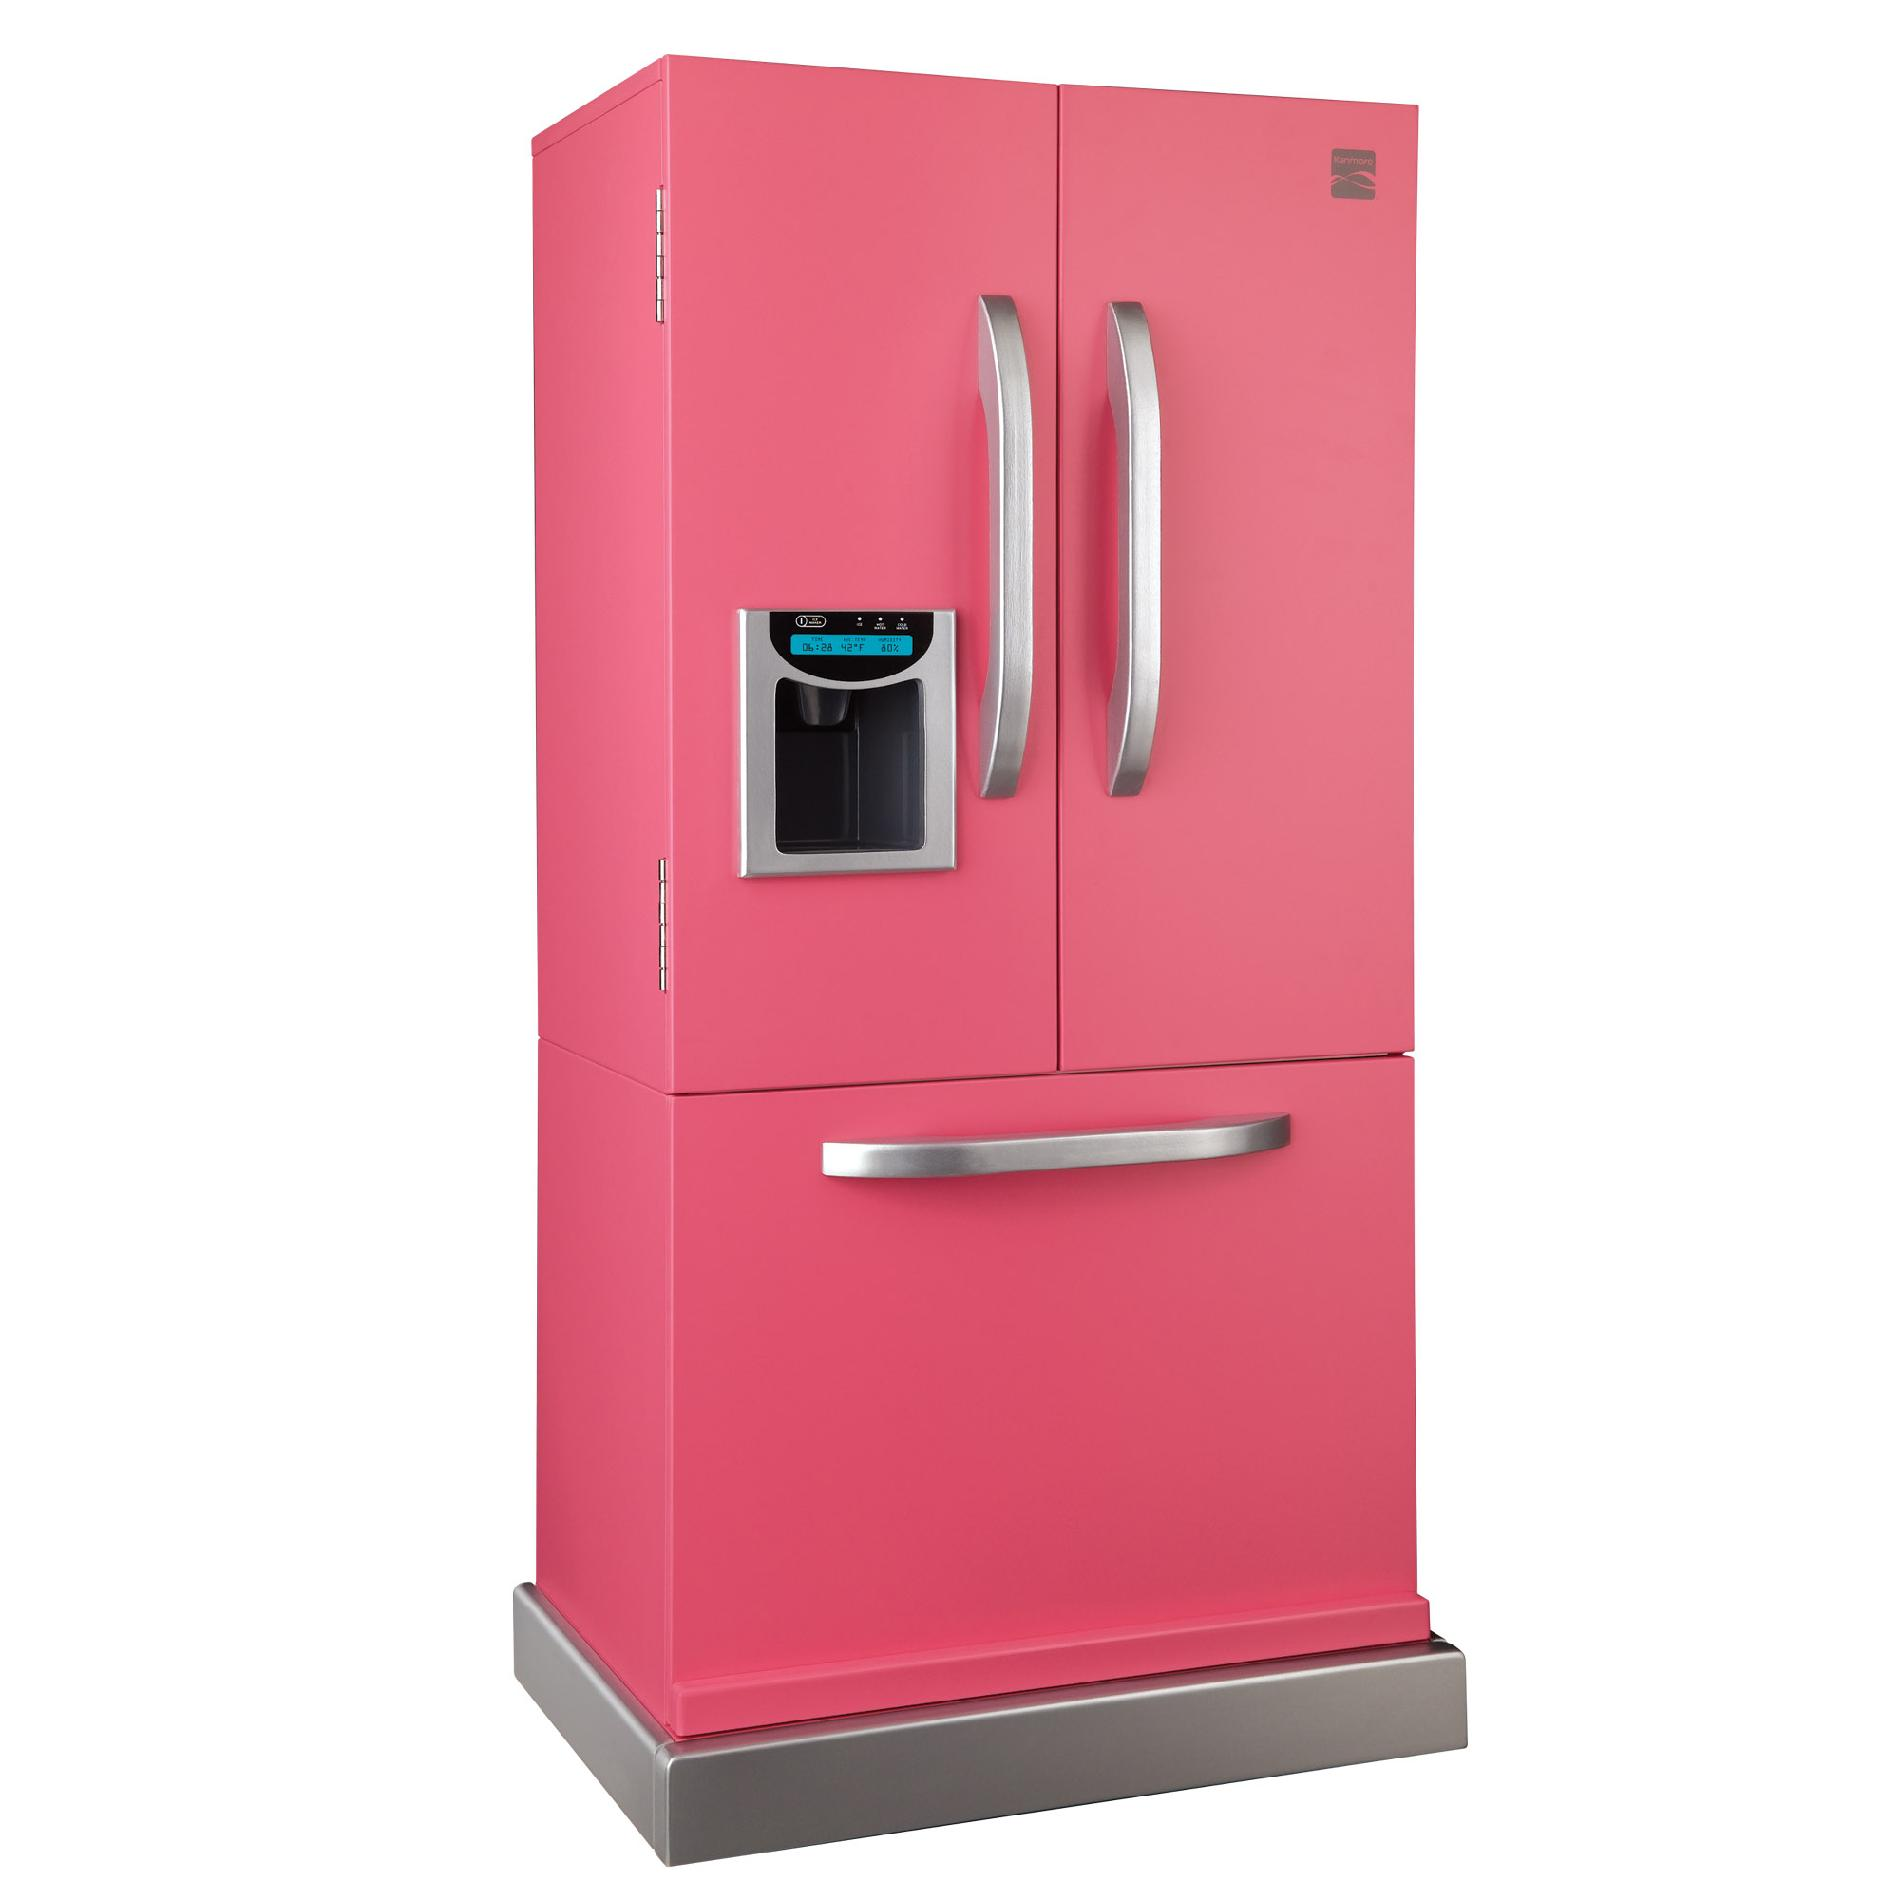 My First Kenmore Refrigerator  Pink  Toys  Games  Pretend Play  Dress Up  Kitchen